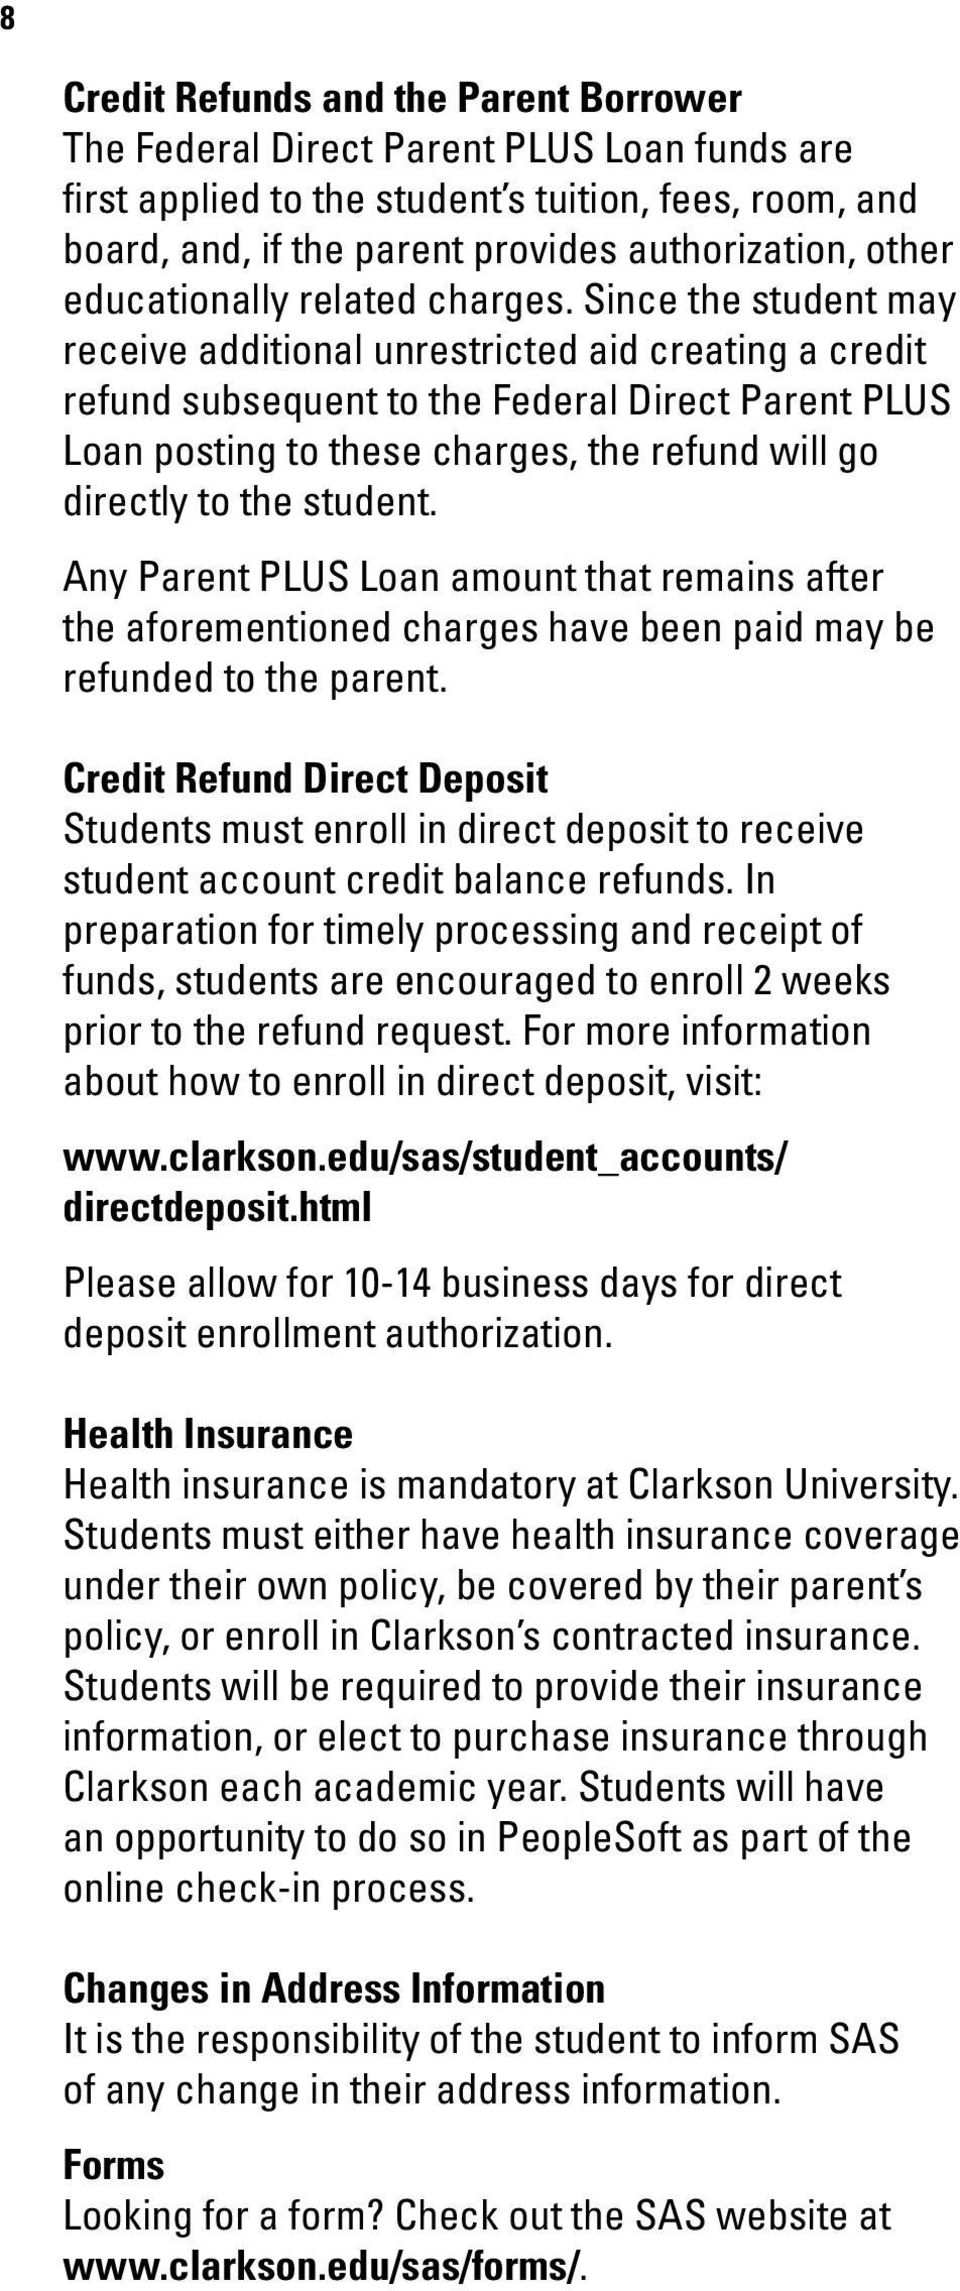 Since the student may receive additional unrestricted aid creating a credit refund subsequent to the Federal Direct Parent PLUS Loan posting to these charges, the refund will go directly to the